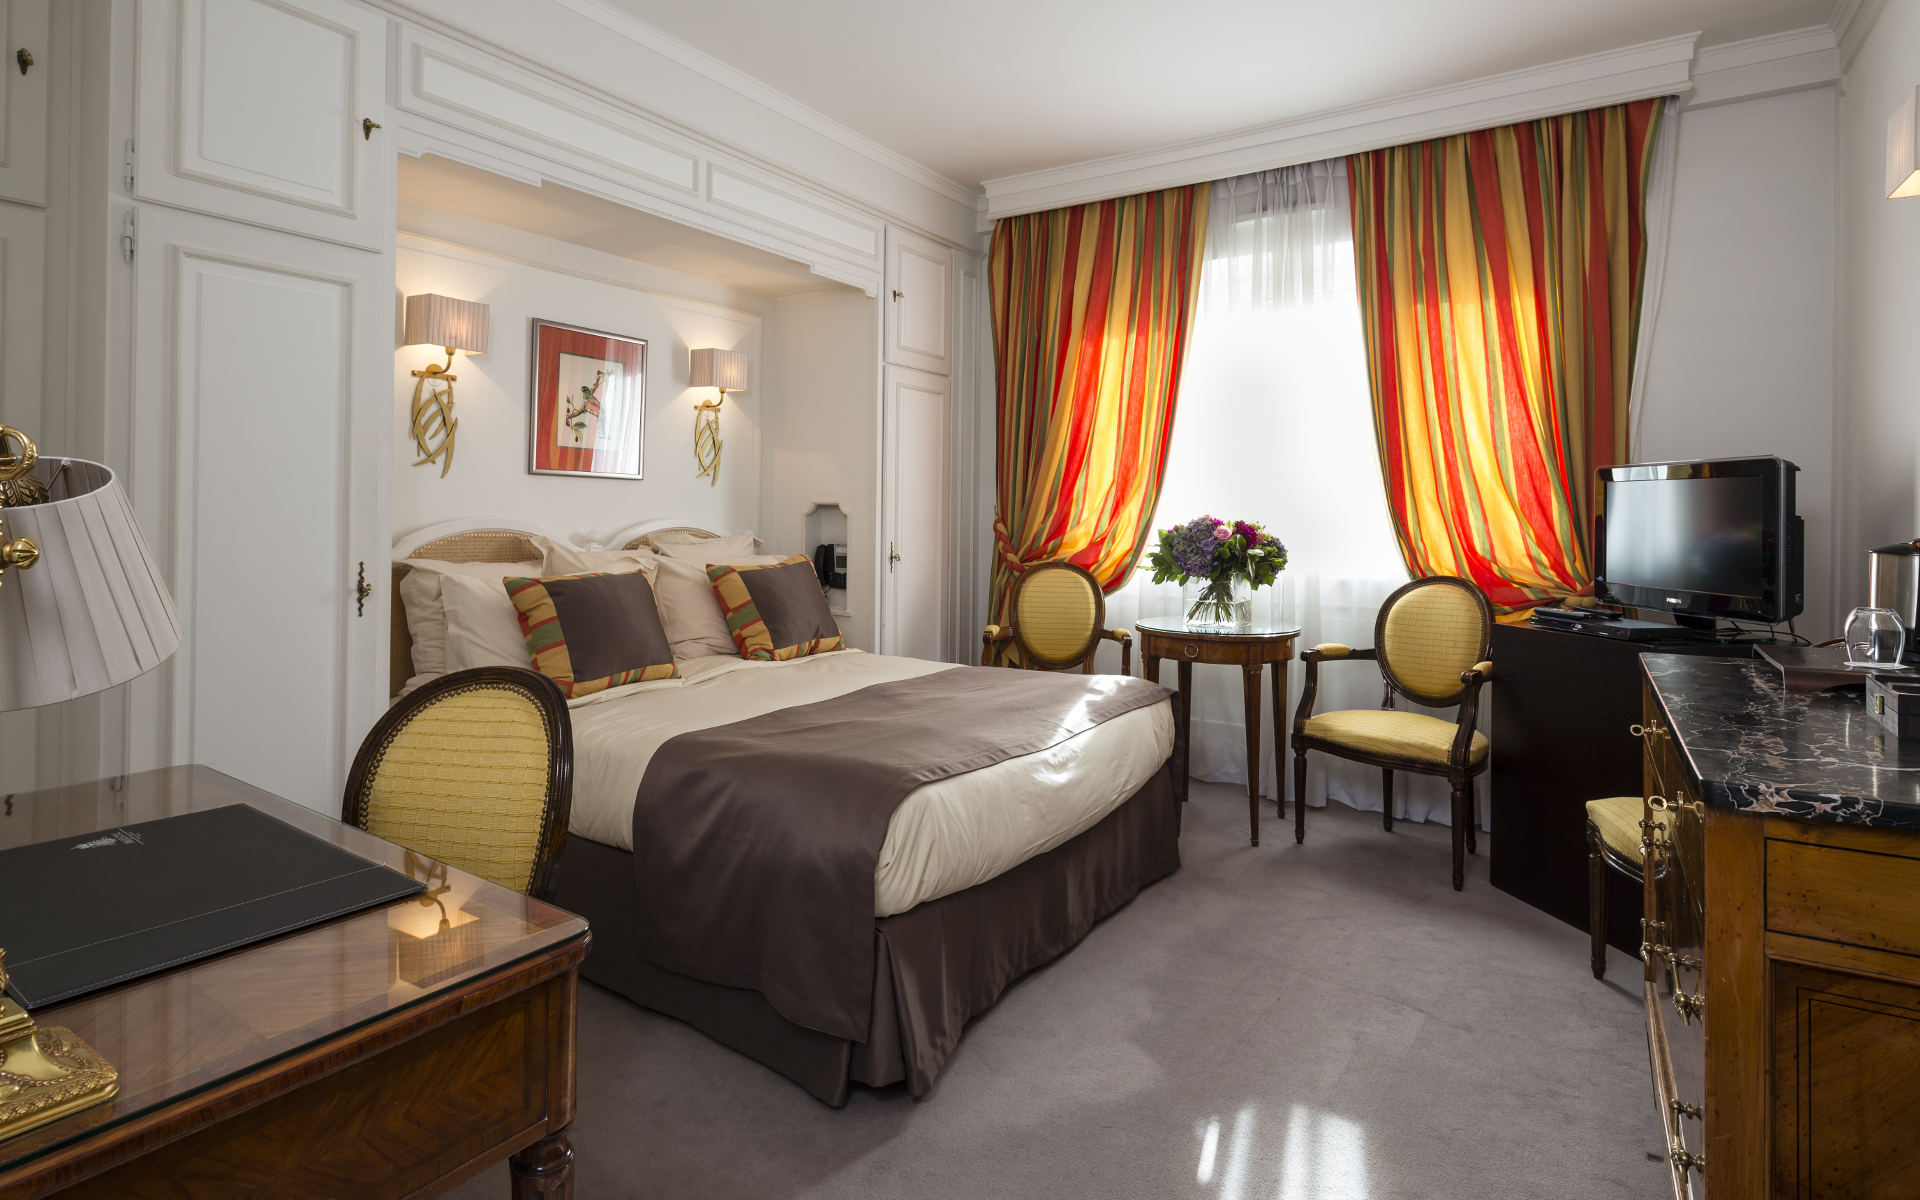 260/Rooms/Classique/Room_Deluxe_4_-__Majestic_Hotel-Spa.jpg